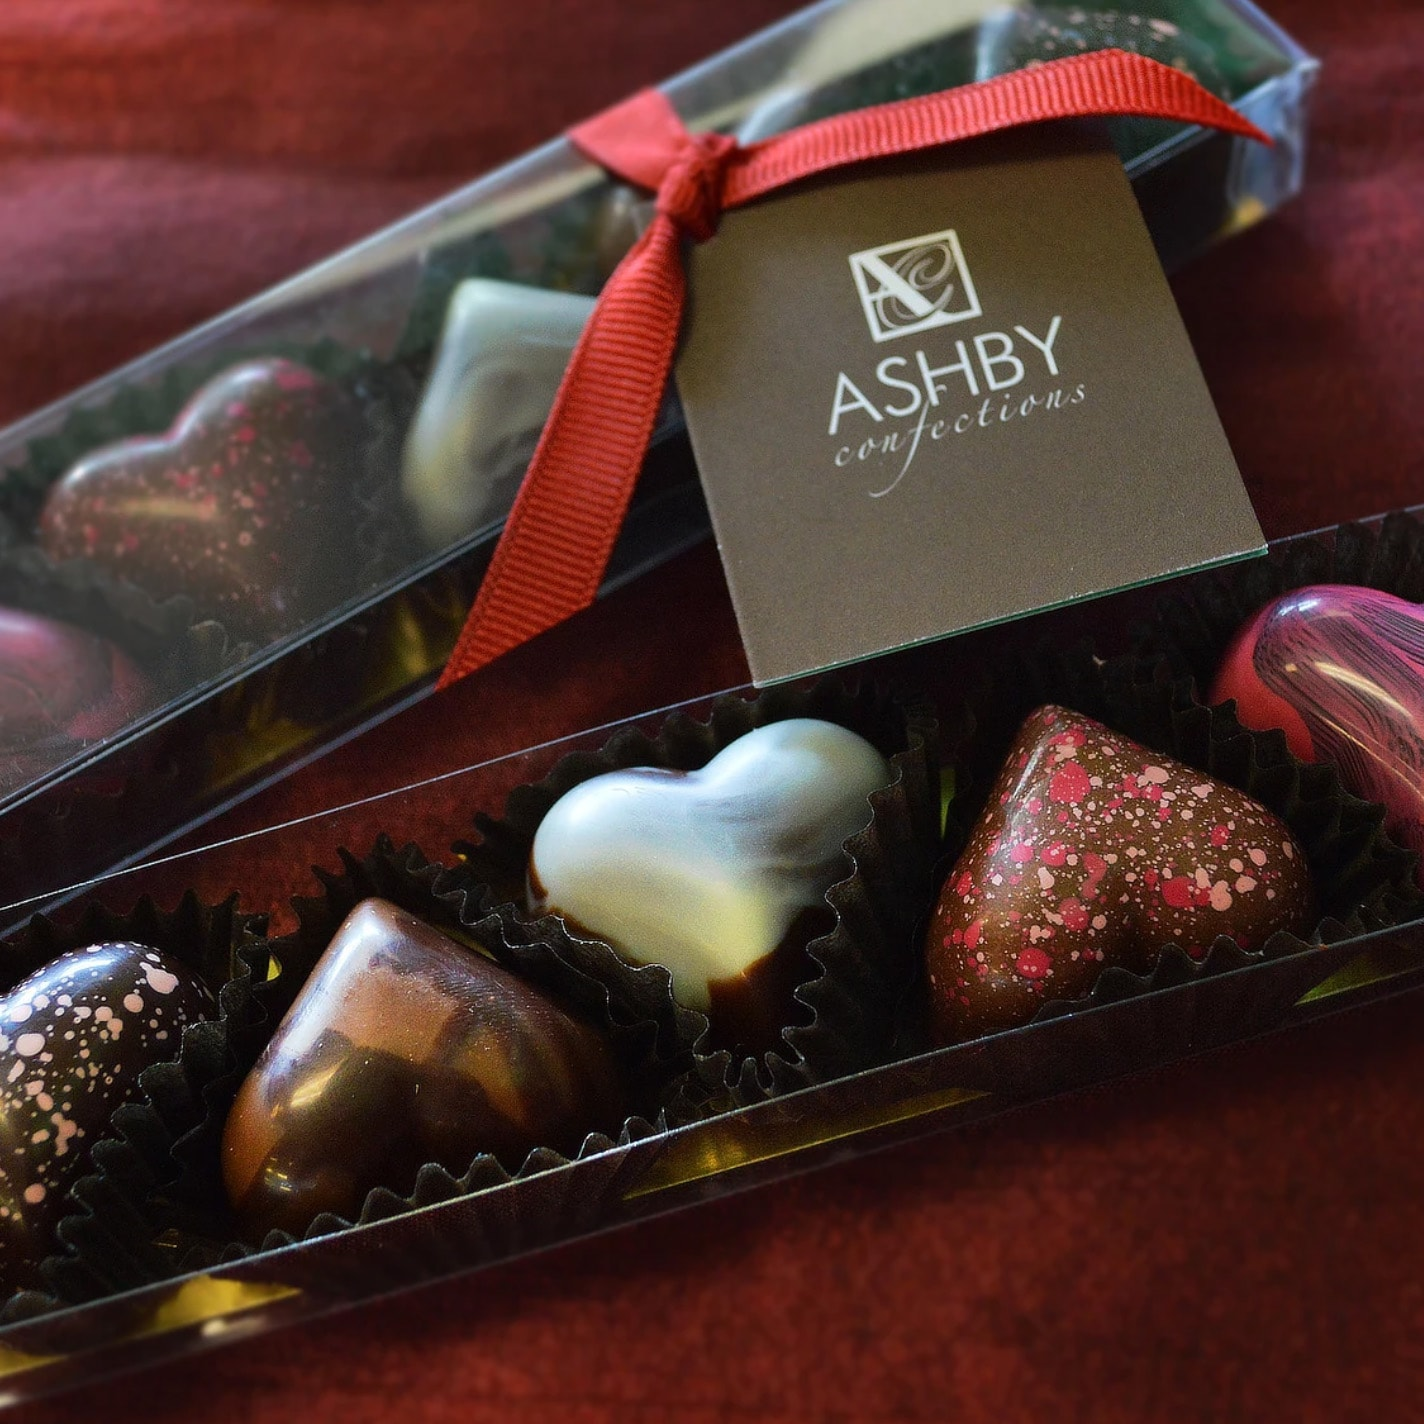 Ashby Chocolates - Clear Box